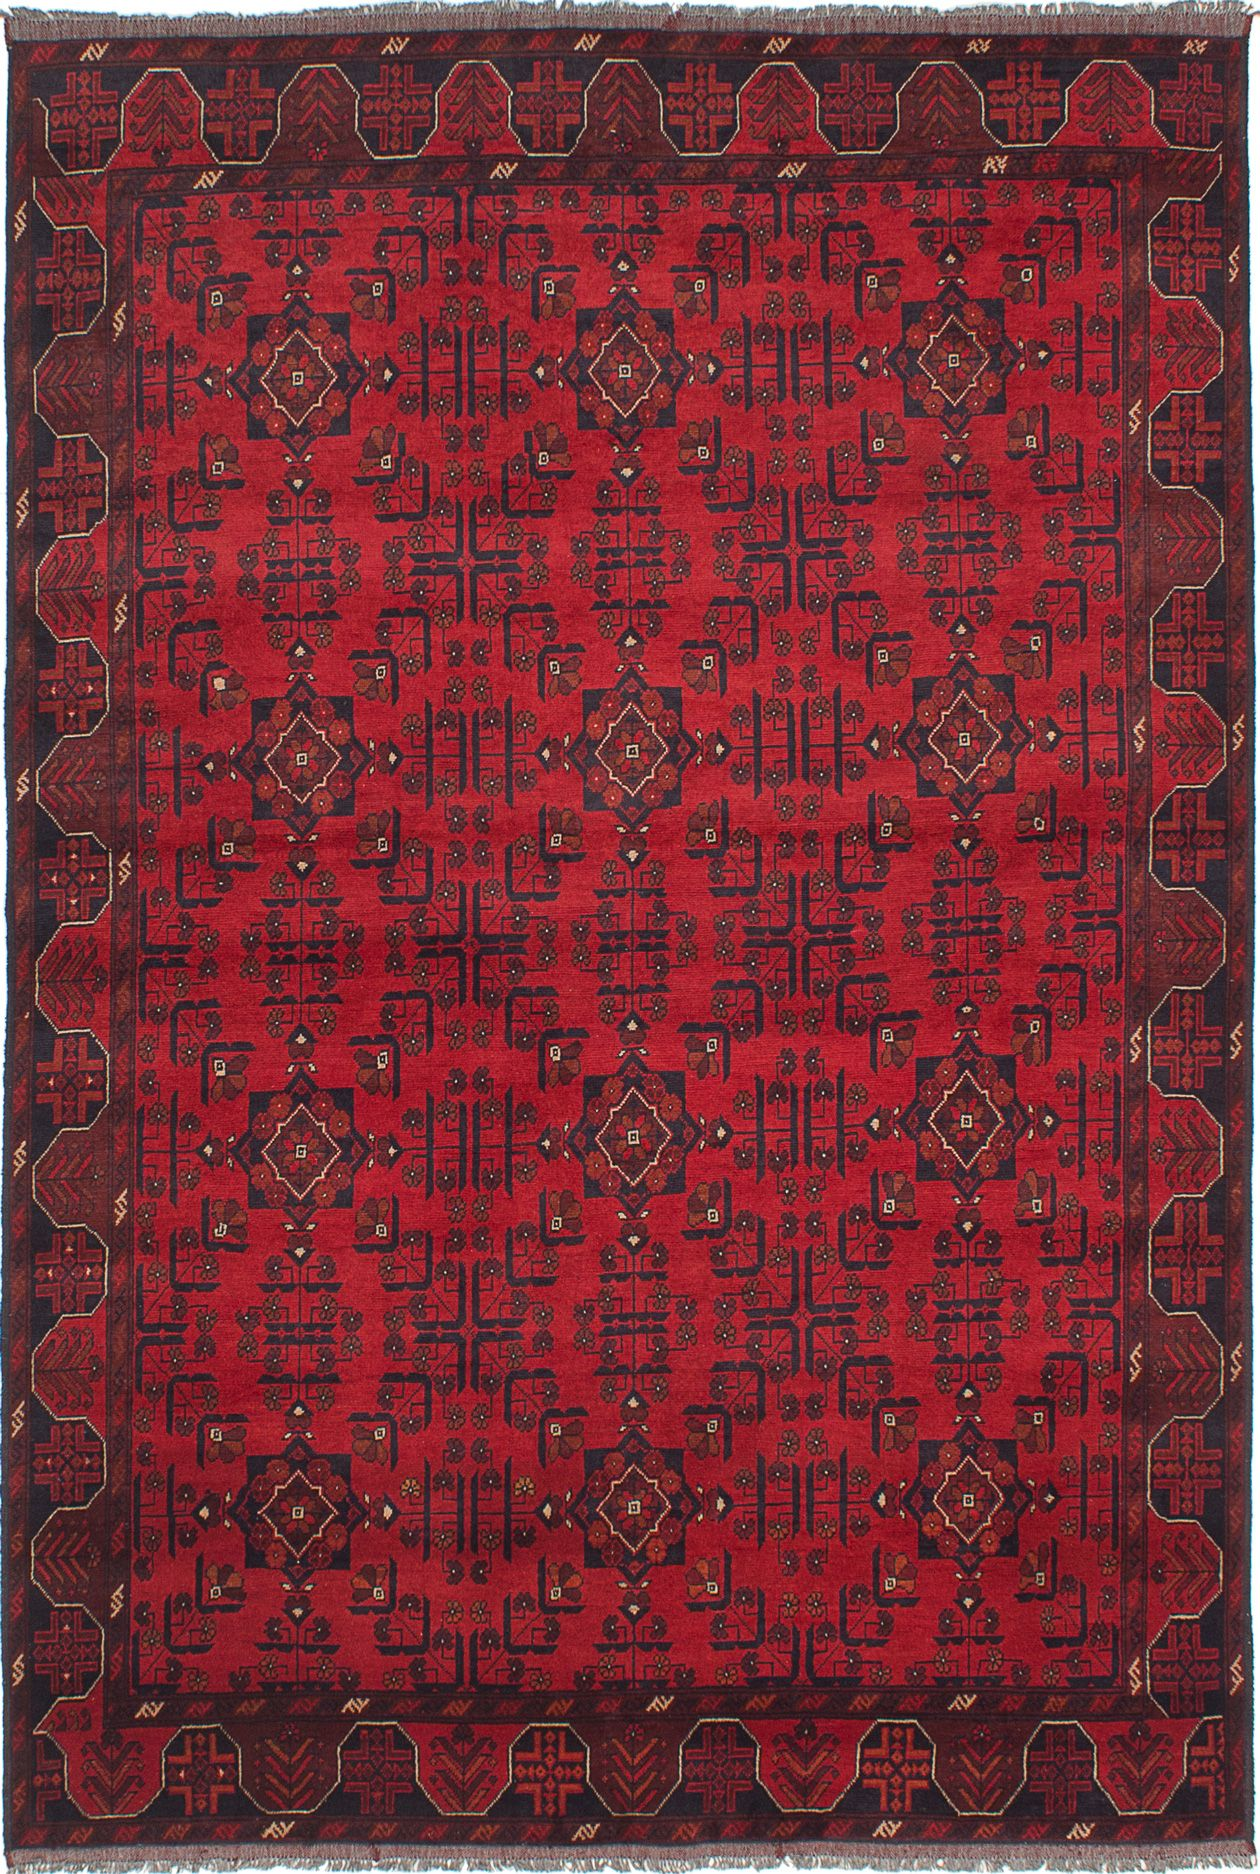 """Hand-knotted Finest Khal Mohammadi Red Wool Rug 6'6"""" x 9'7""""  Size: 6'6"""" x 9'7"""""""